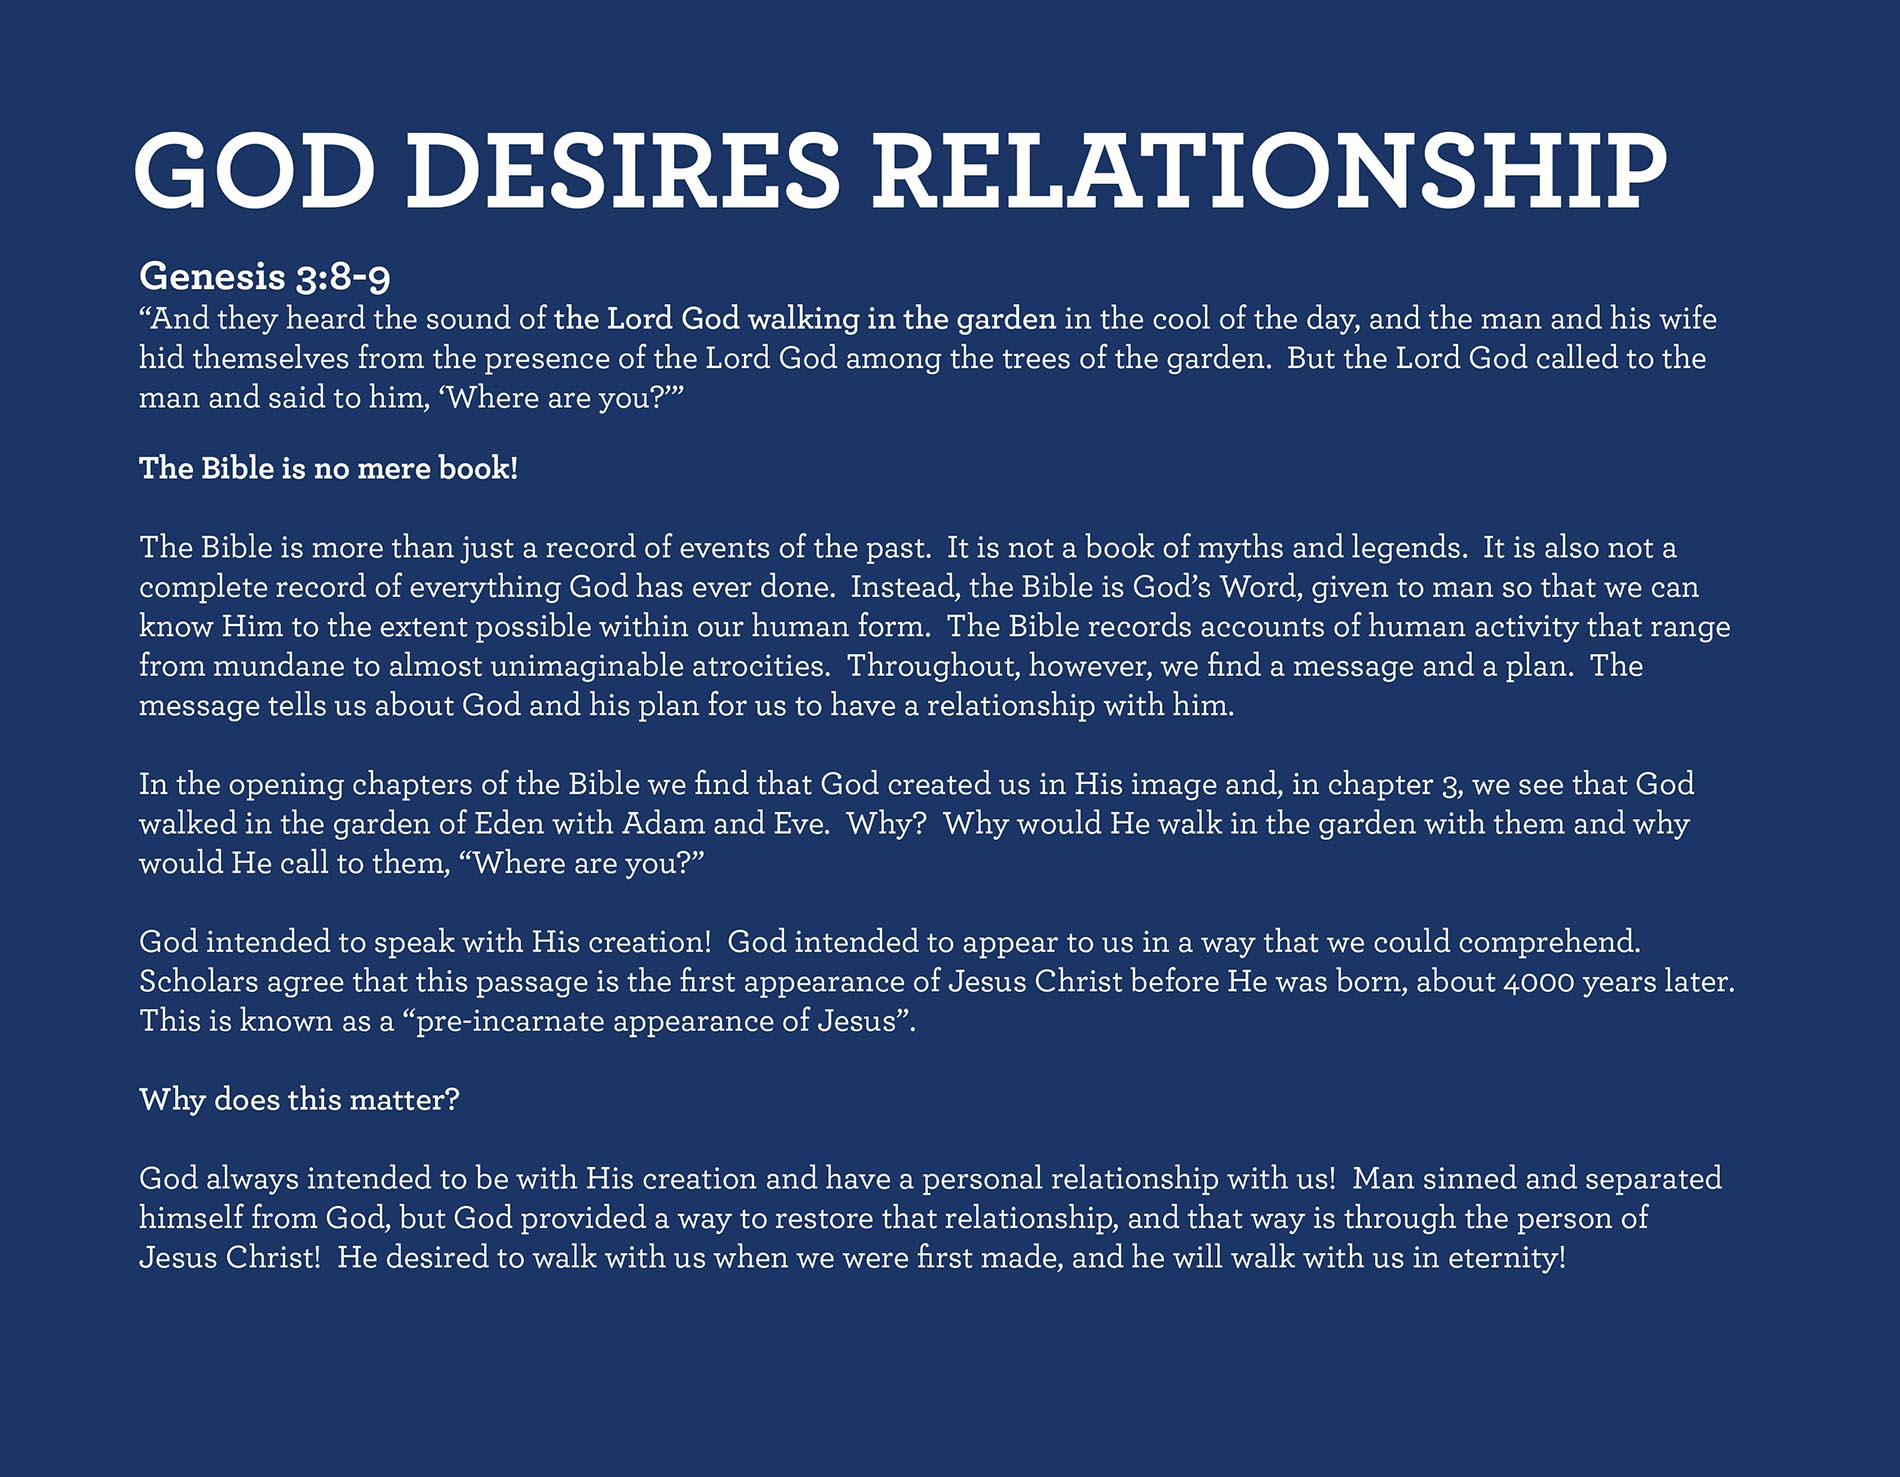 What God Desires